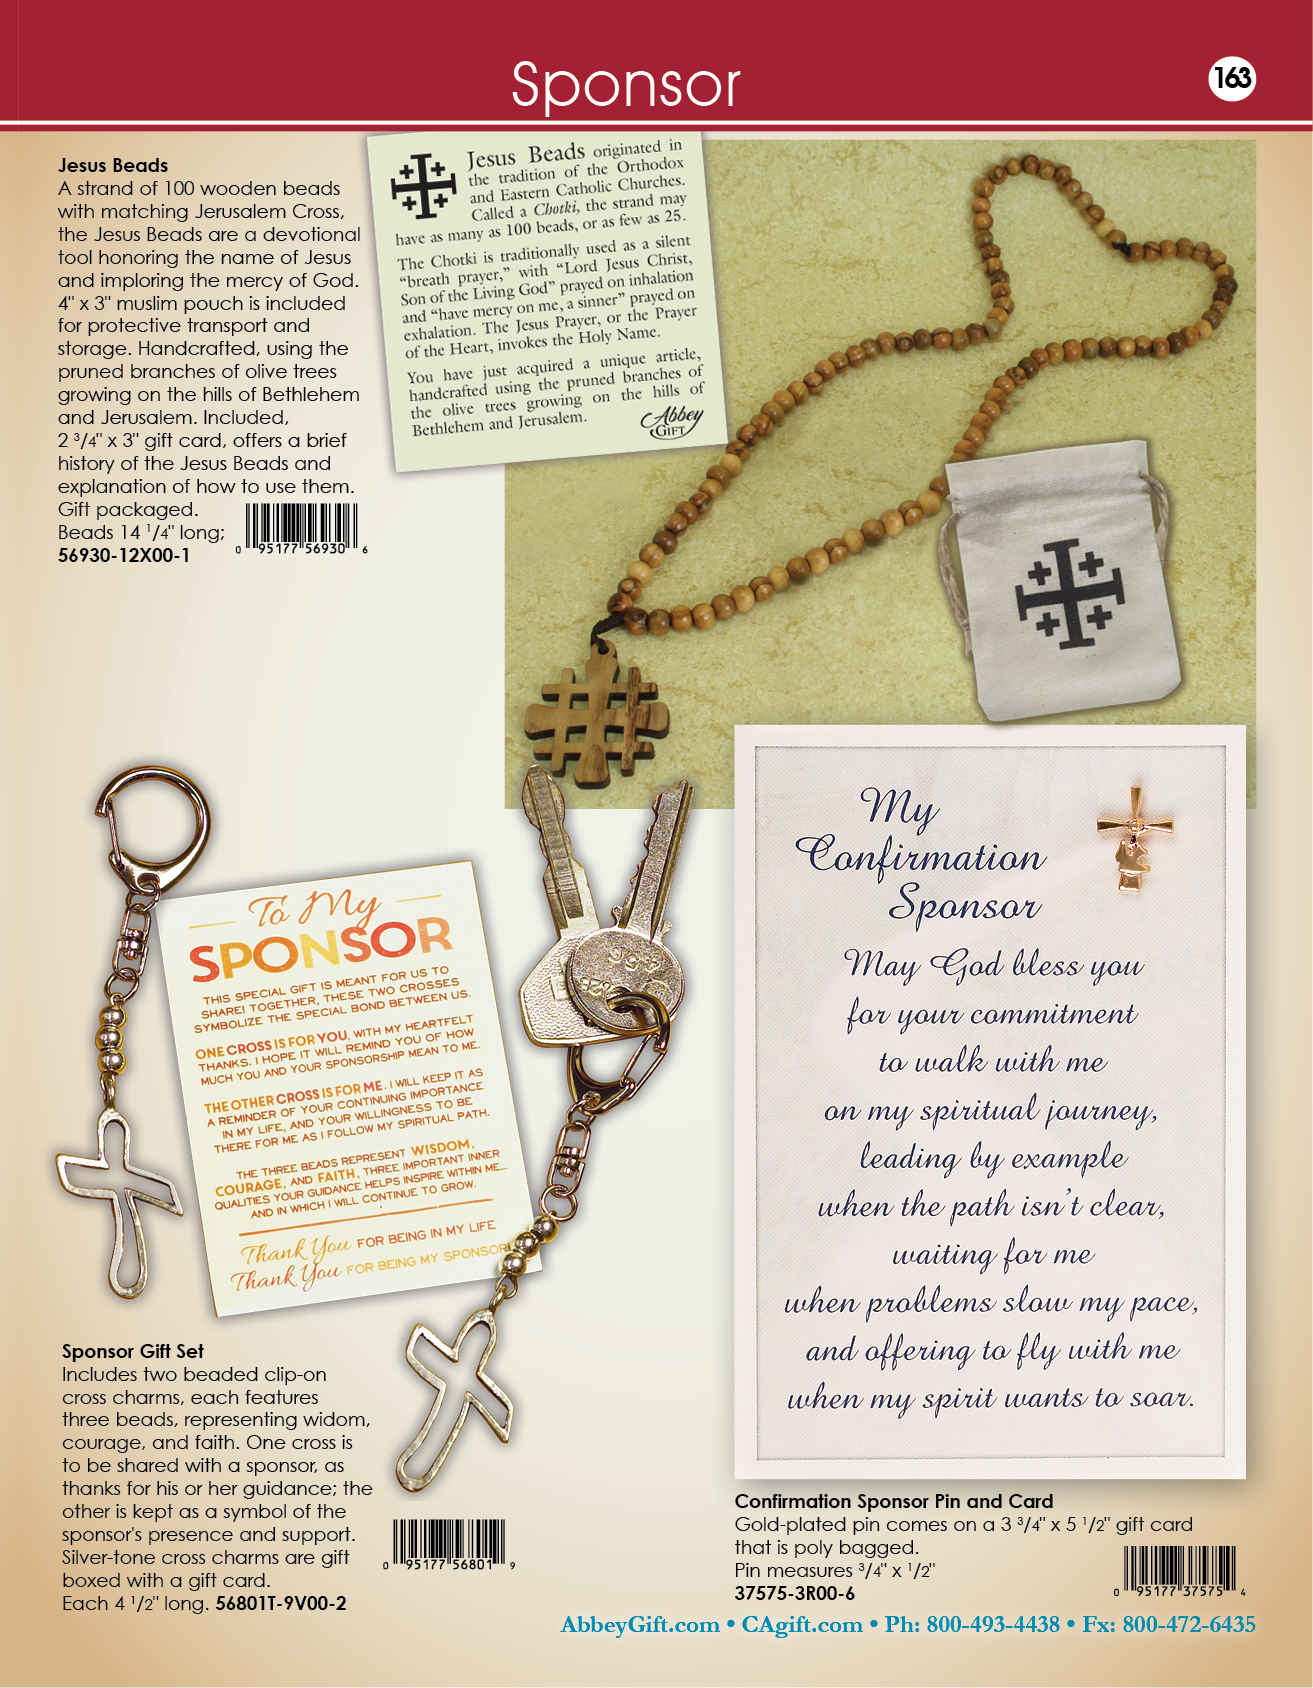 CA & Abbey Gift Pgs163